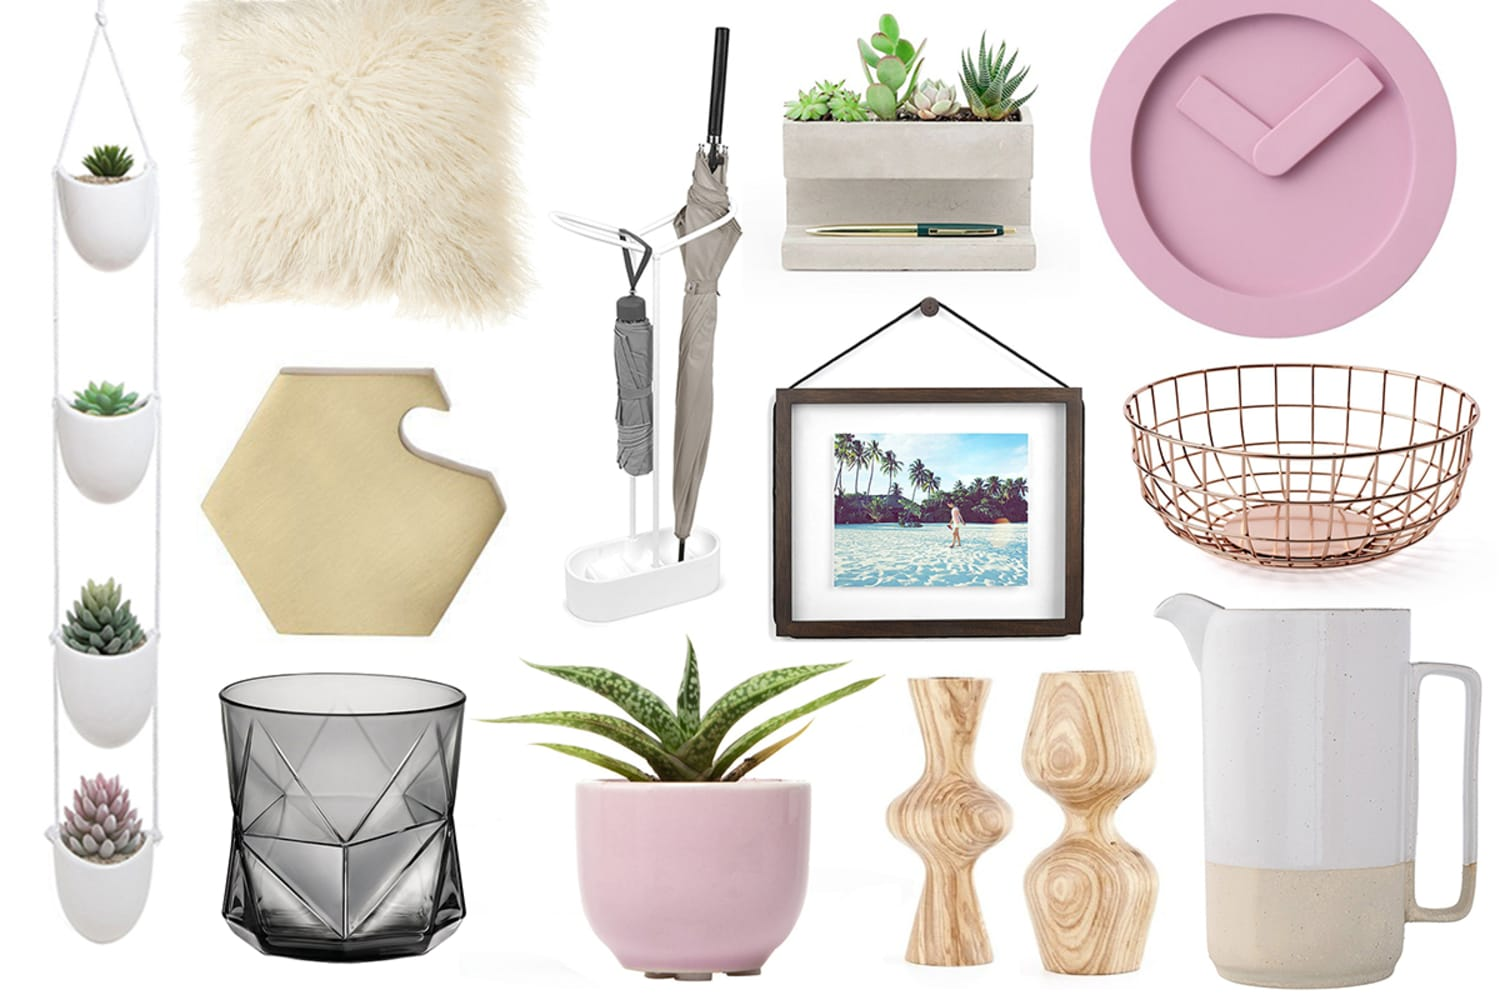 30 Home Finds Under $50 From a New Best-of-Amazon Curation Site